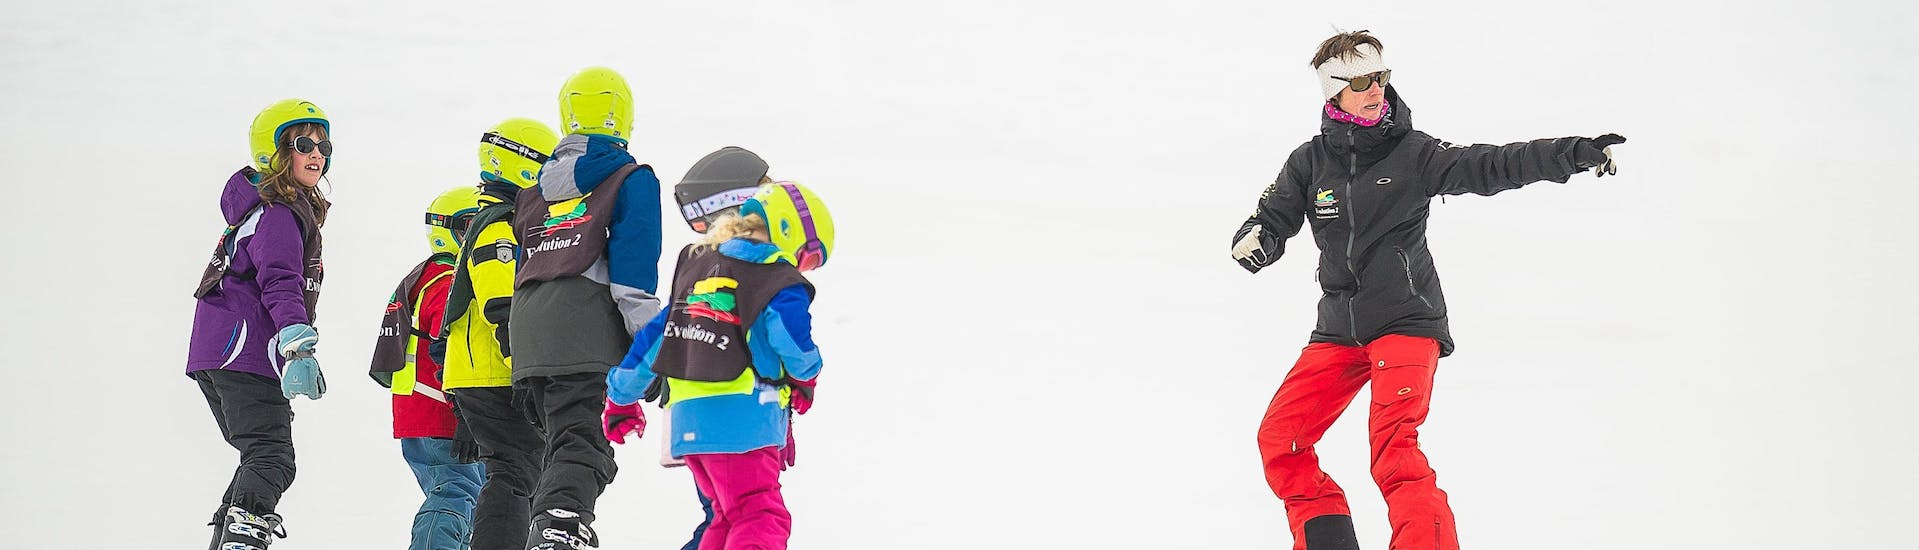 A group of skiers are following the instructions of their ski instructor from the ski school Evolution 2 Tignes during their Kids Ski Lessons (6-13 years) - Afternoon - All Levels.